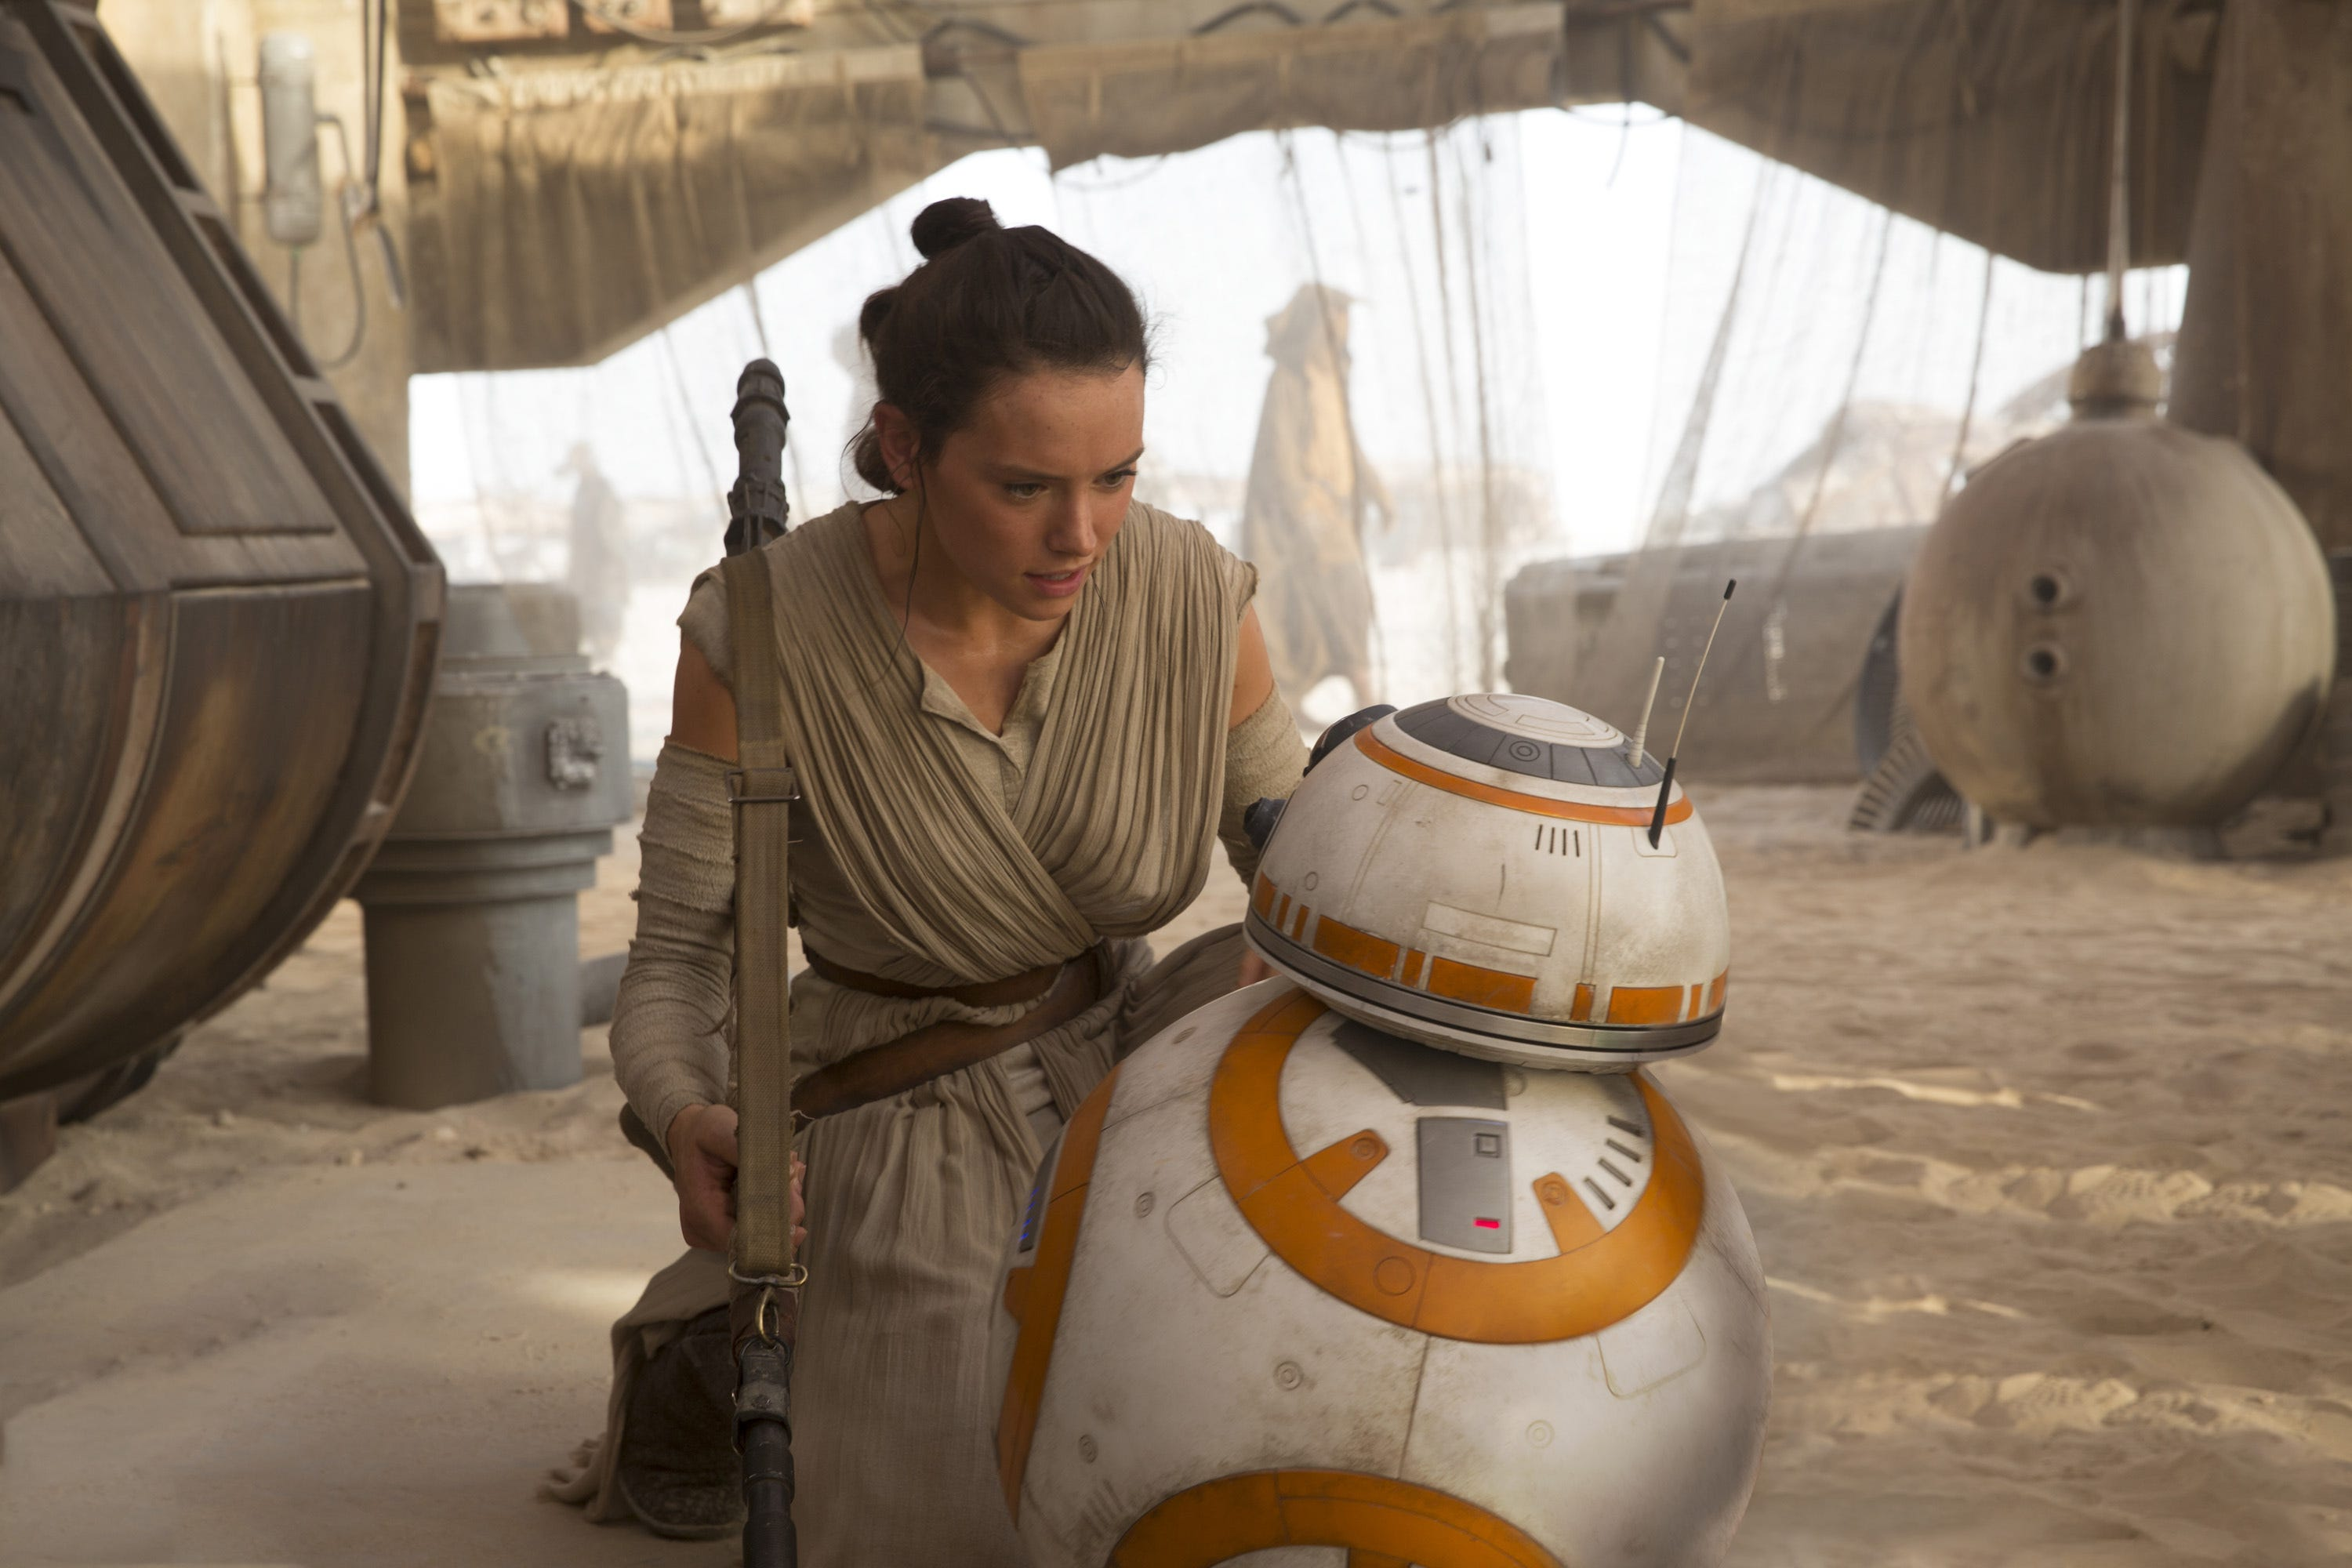 """Daisy Ridley as Rey with BB-8 in """"Star Wars: The Force Awakens"""" (2015)"""